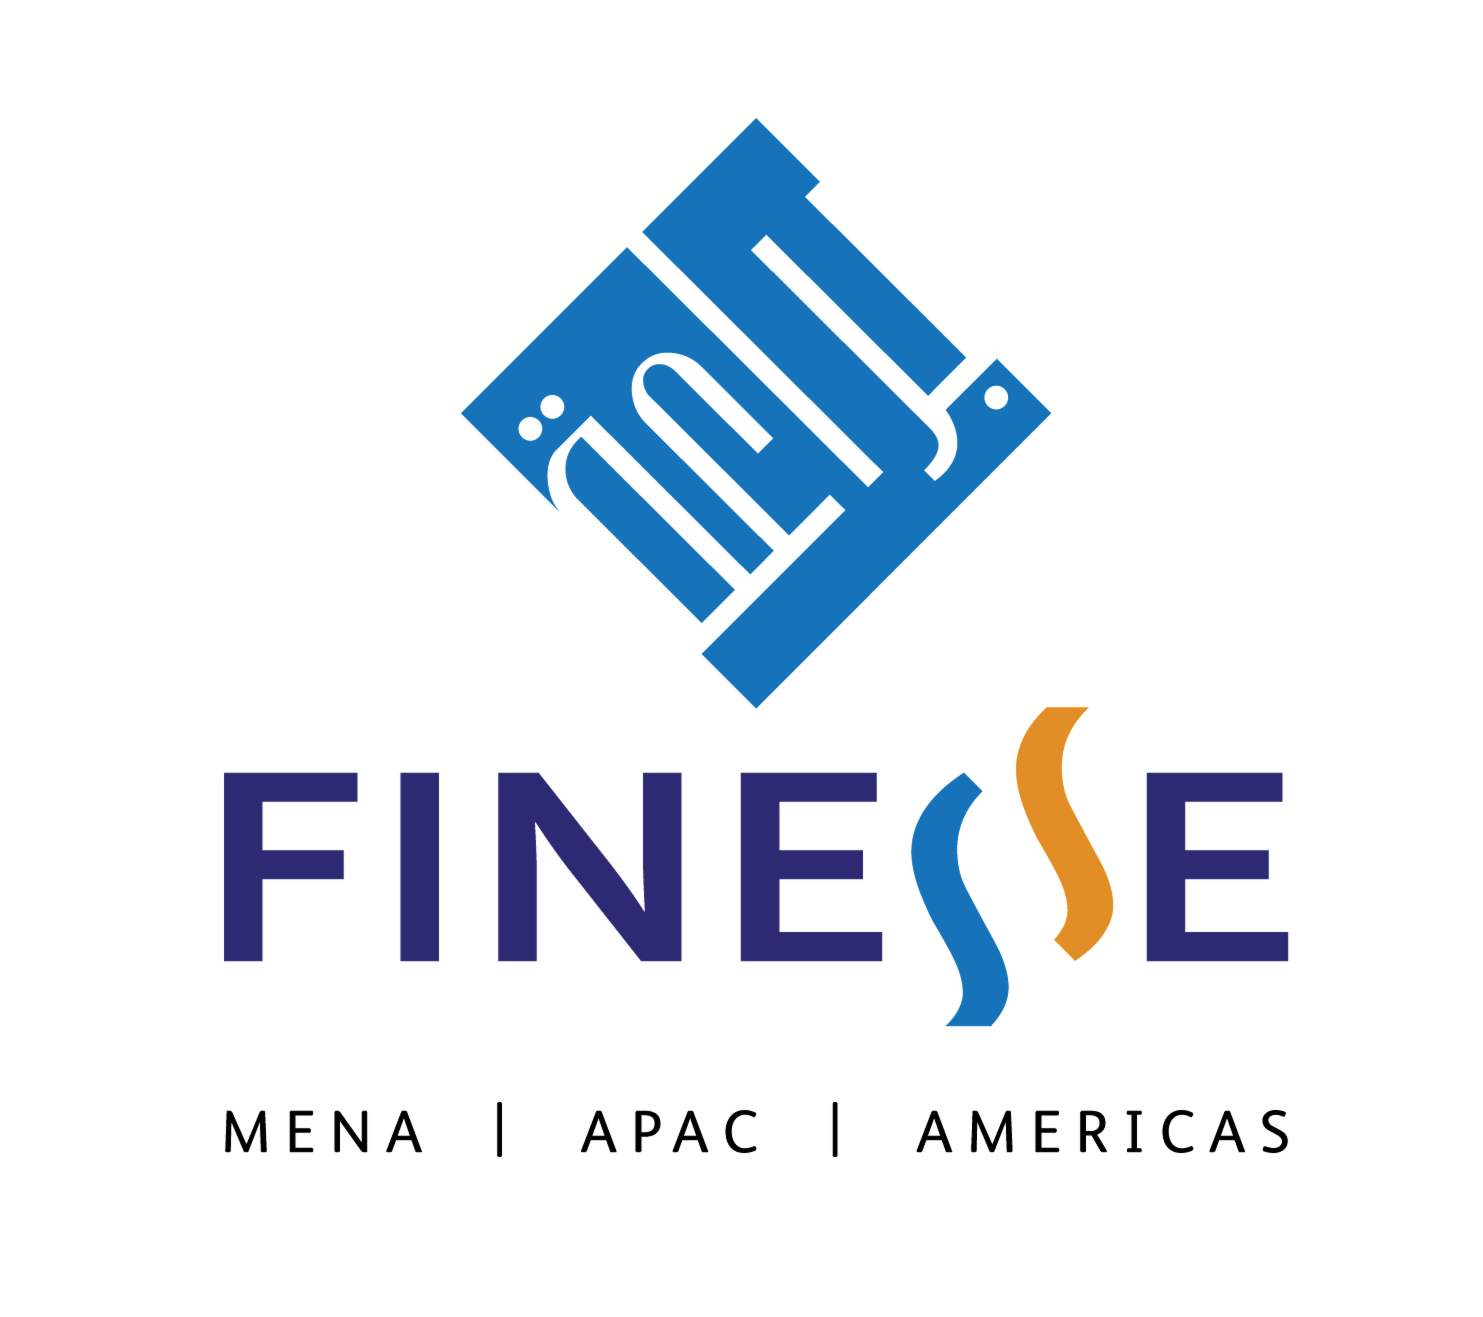 Finesse FZ LLC